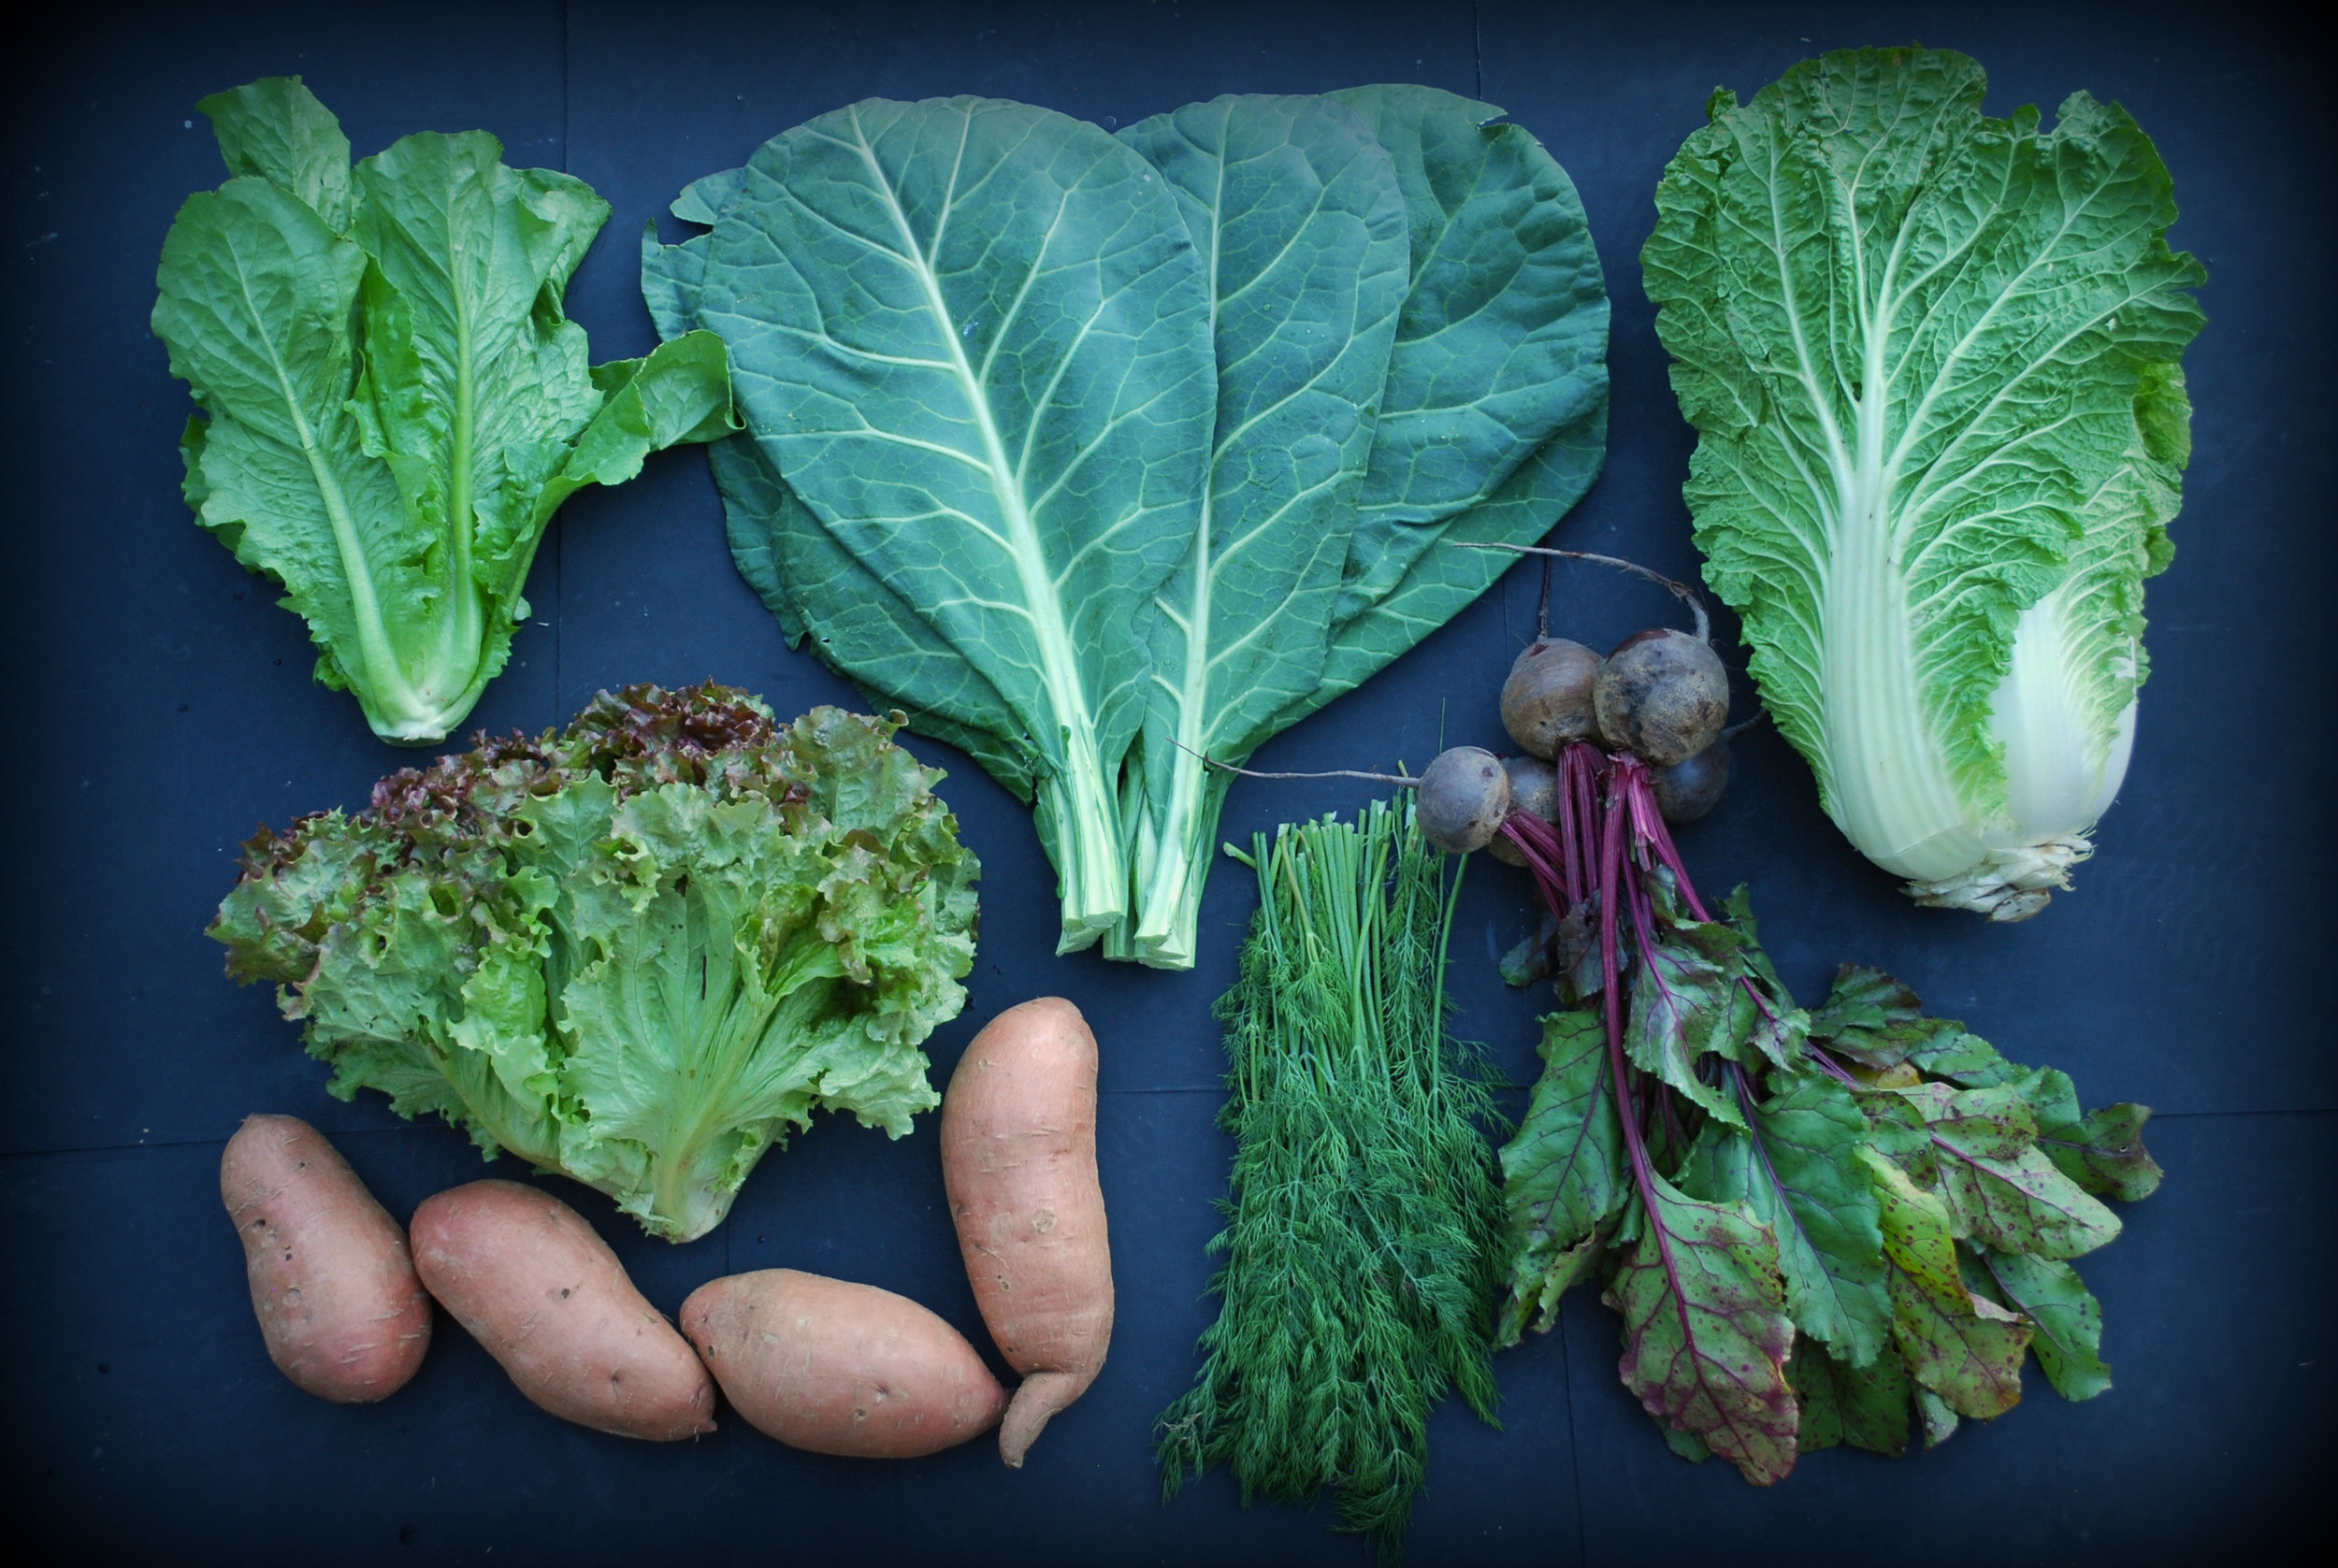 Your Week 7 Fall share: Romaine lettuce, red leaf lettuce, sweet potatoes, collards, dill, red beets, Napa cabbage, and curly kale (not pictured).